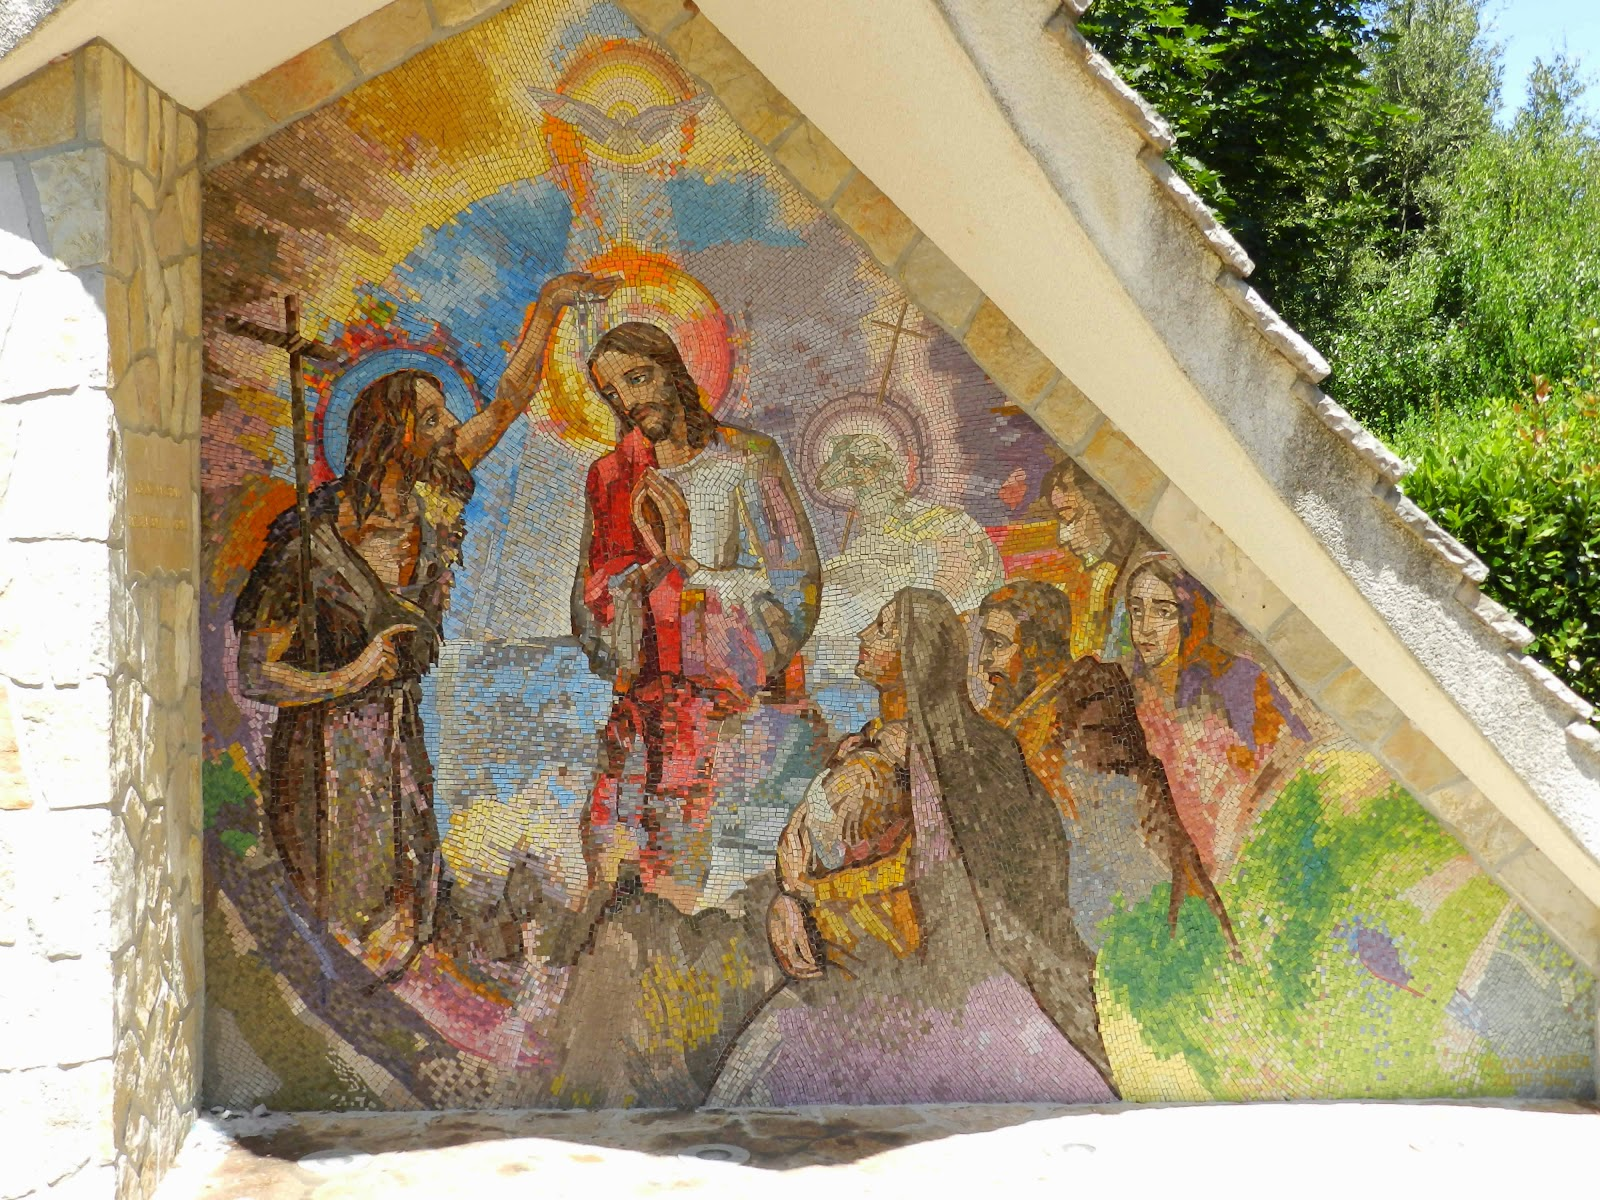 The first Luminous Mystery mosaic in Medjugorje, The Baptism of Jesus